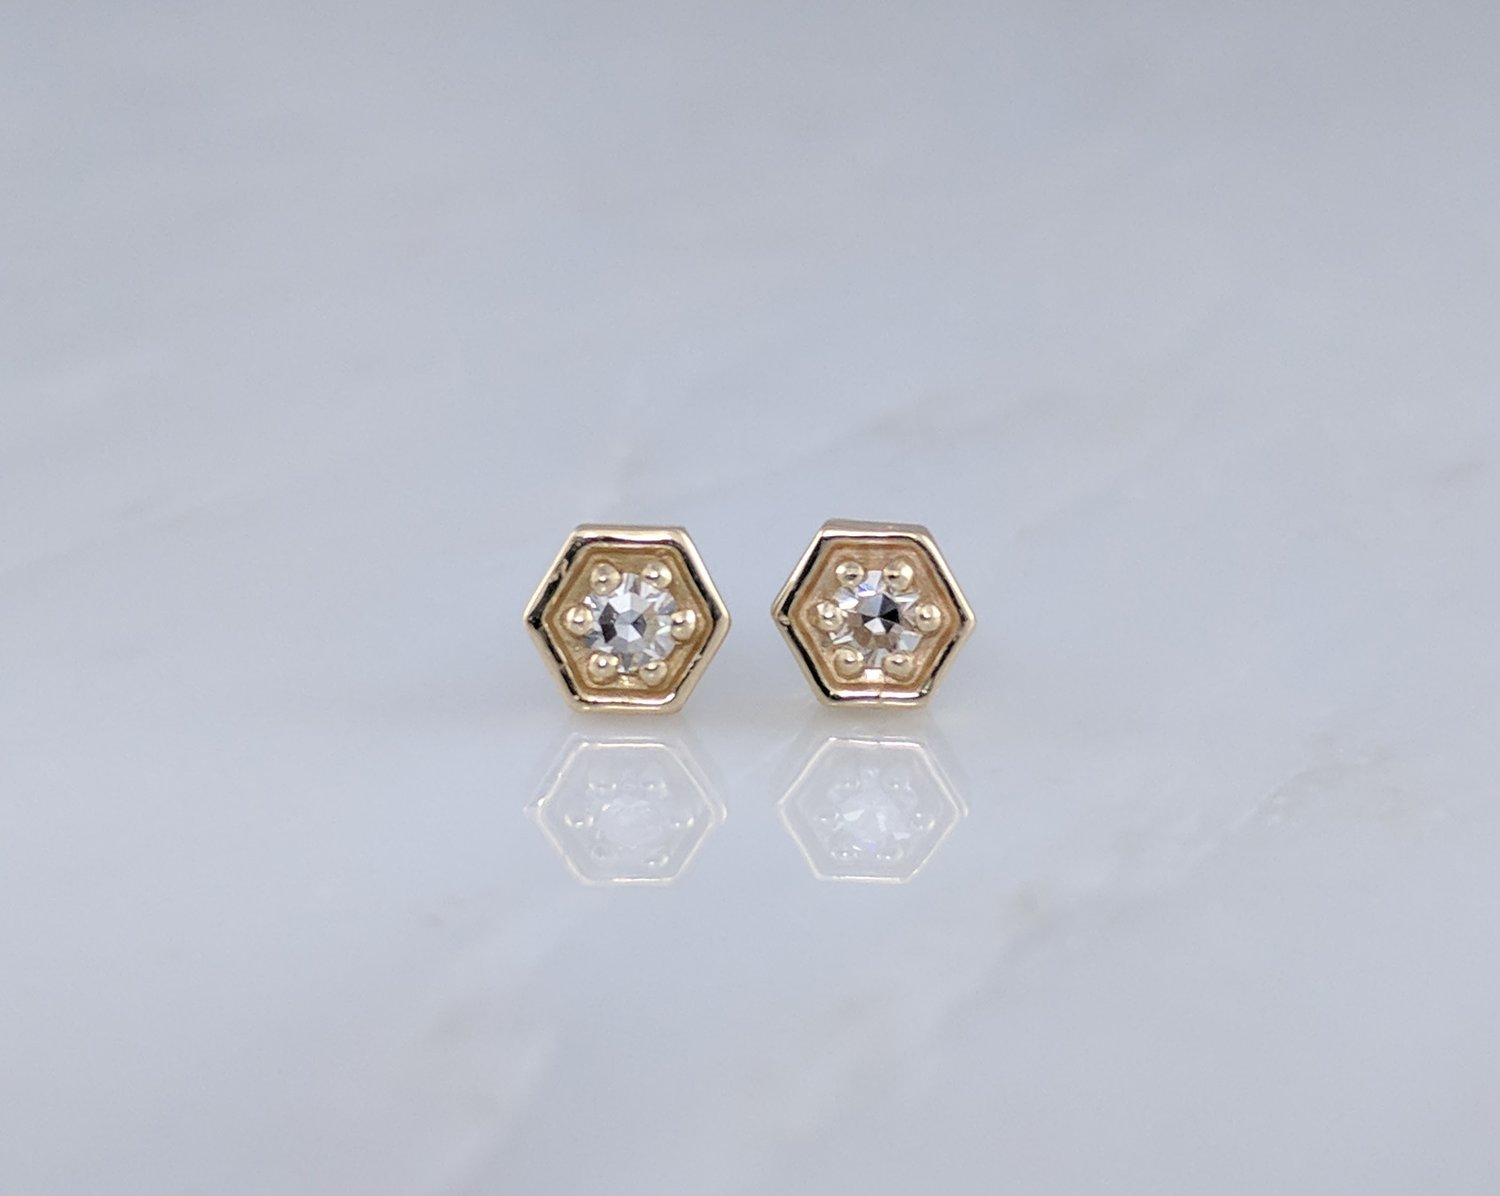 anna champagne gold morganite diamond earrings diamonds medium products cd rg jewelry rosette in sheffield pmo stud peach rose